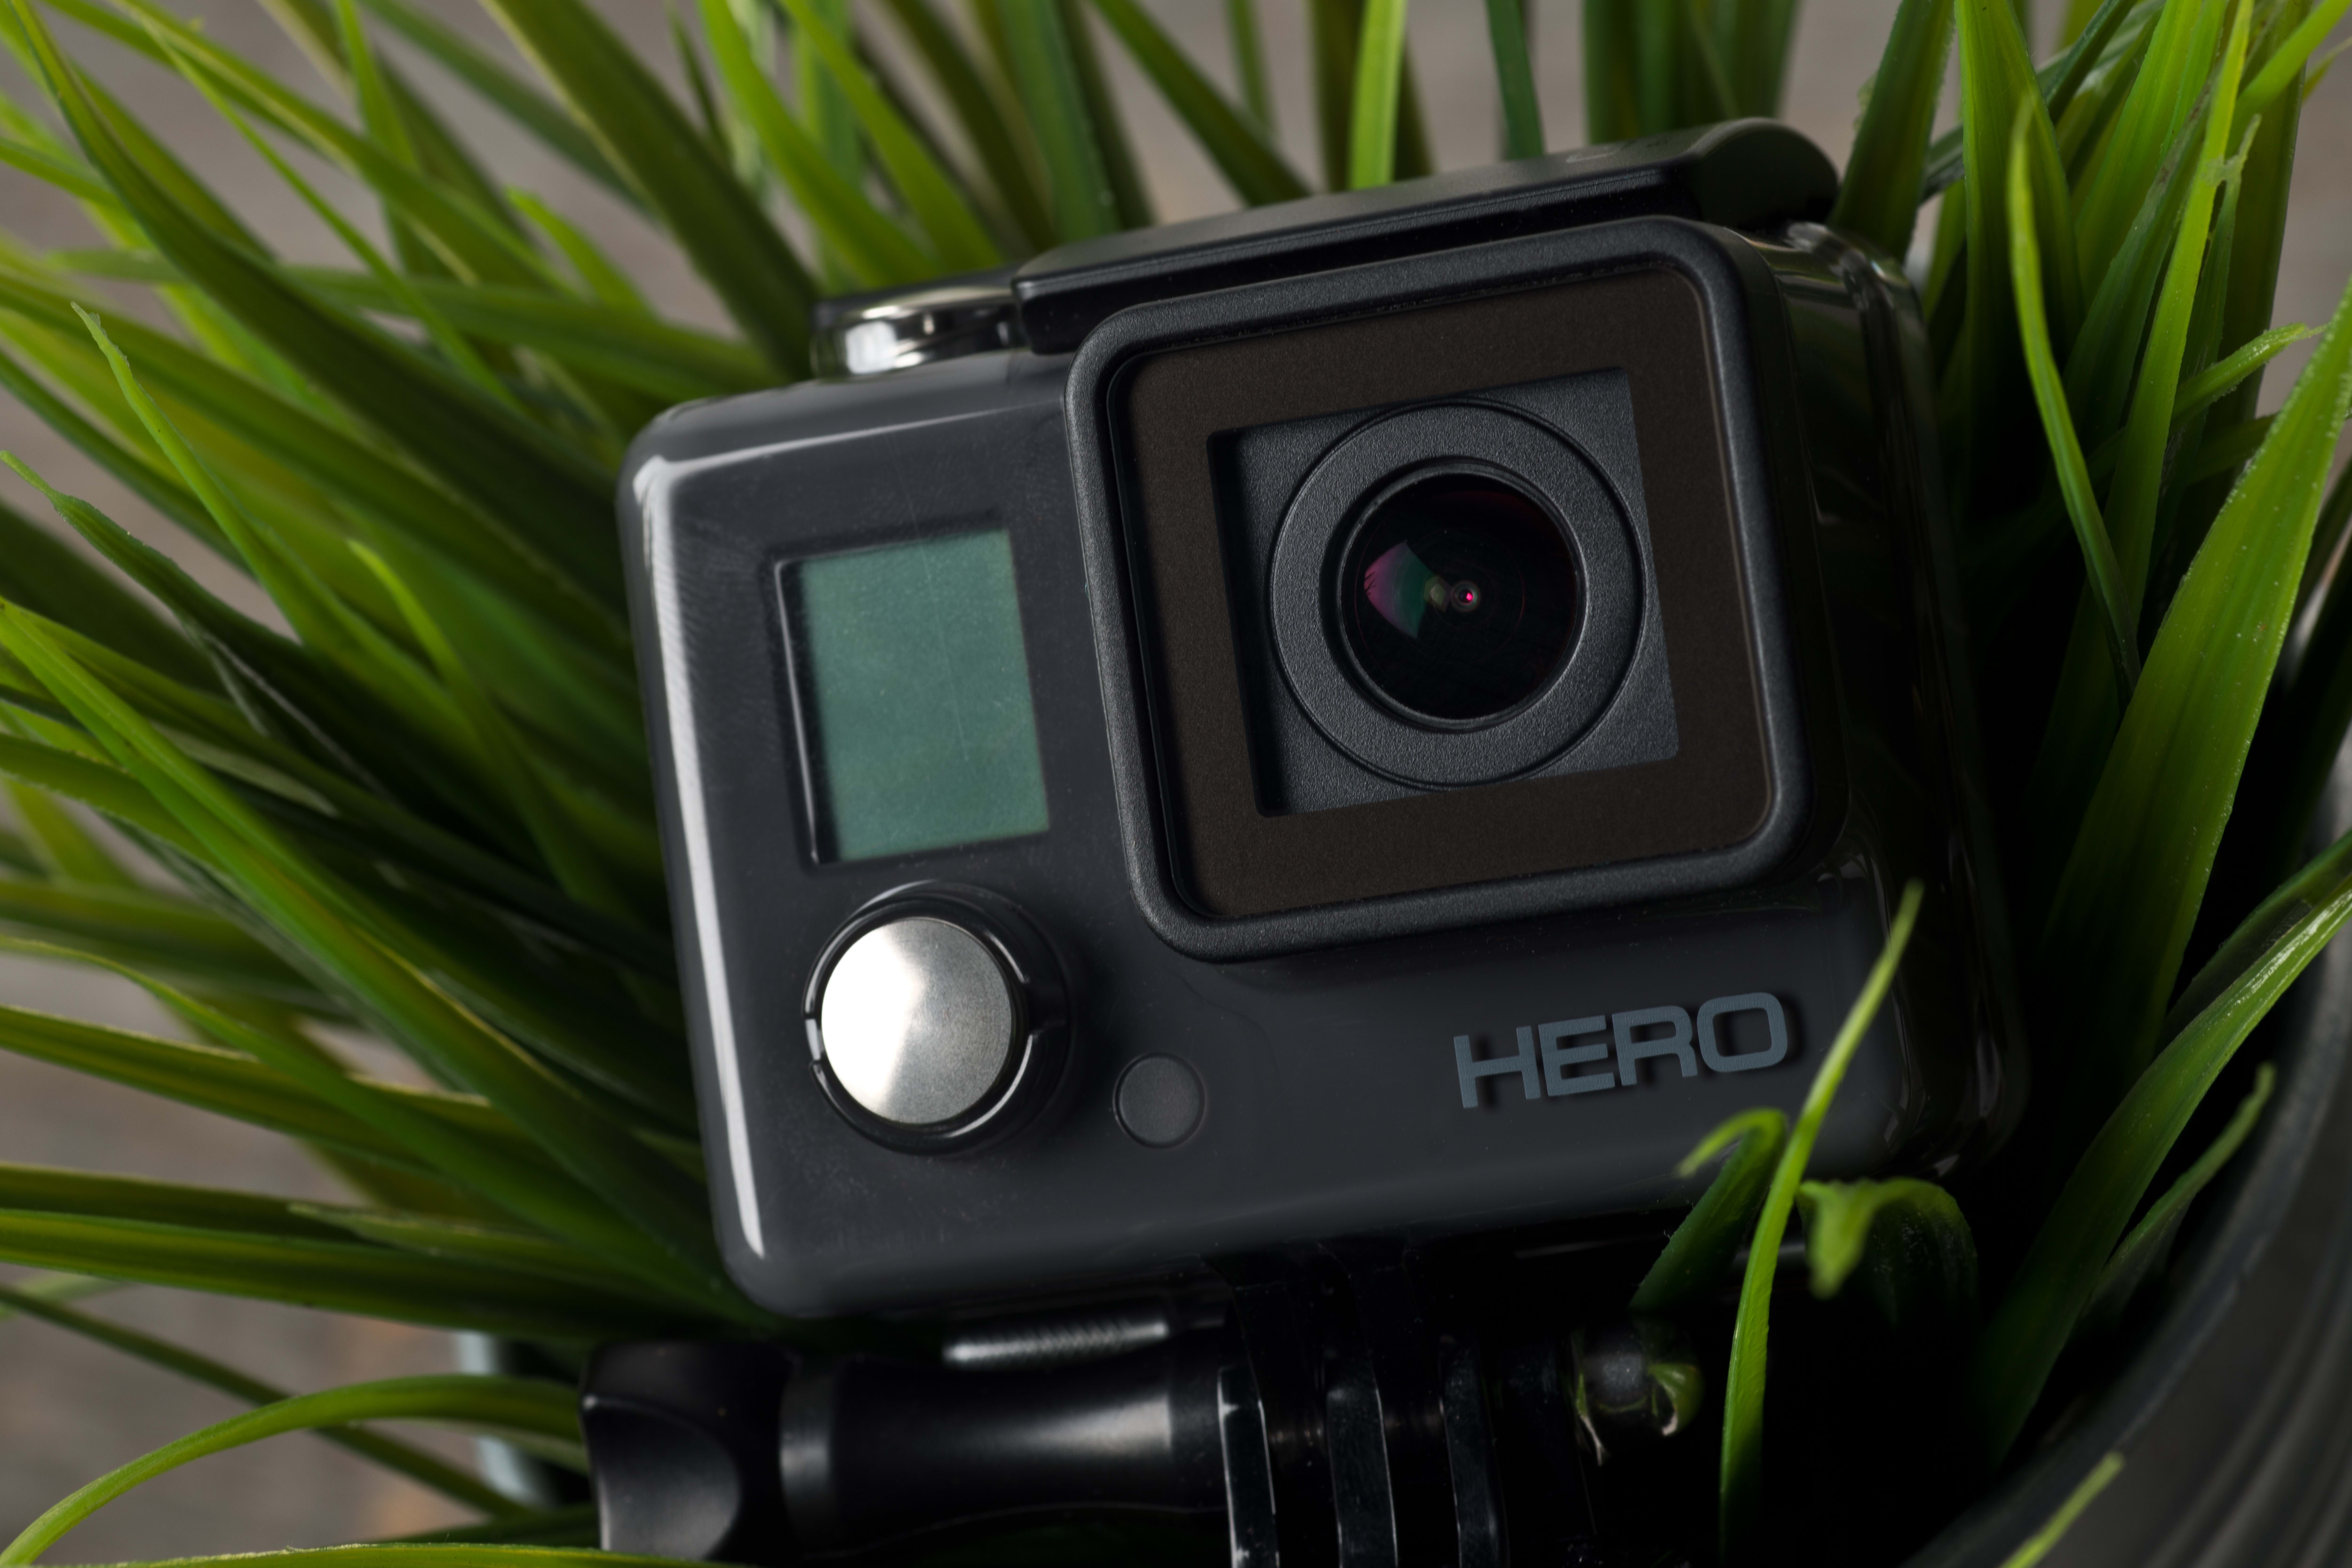 A photograph of the GoPro Hero 2014 edition's lens.